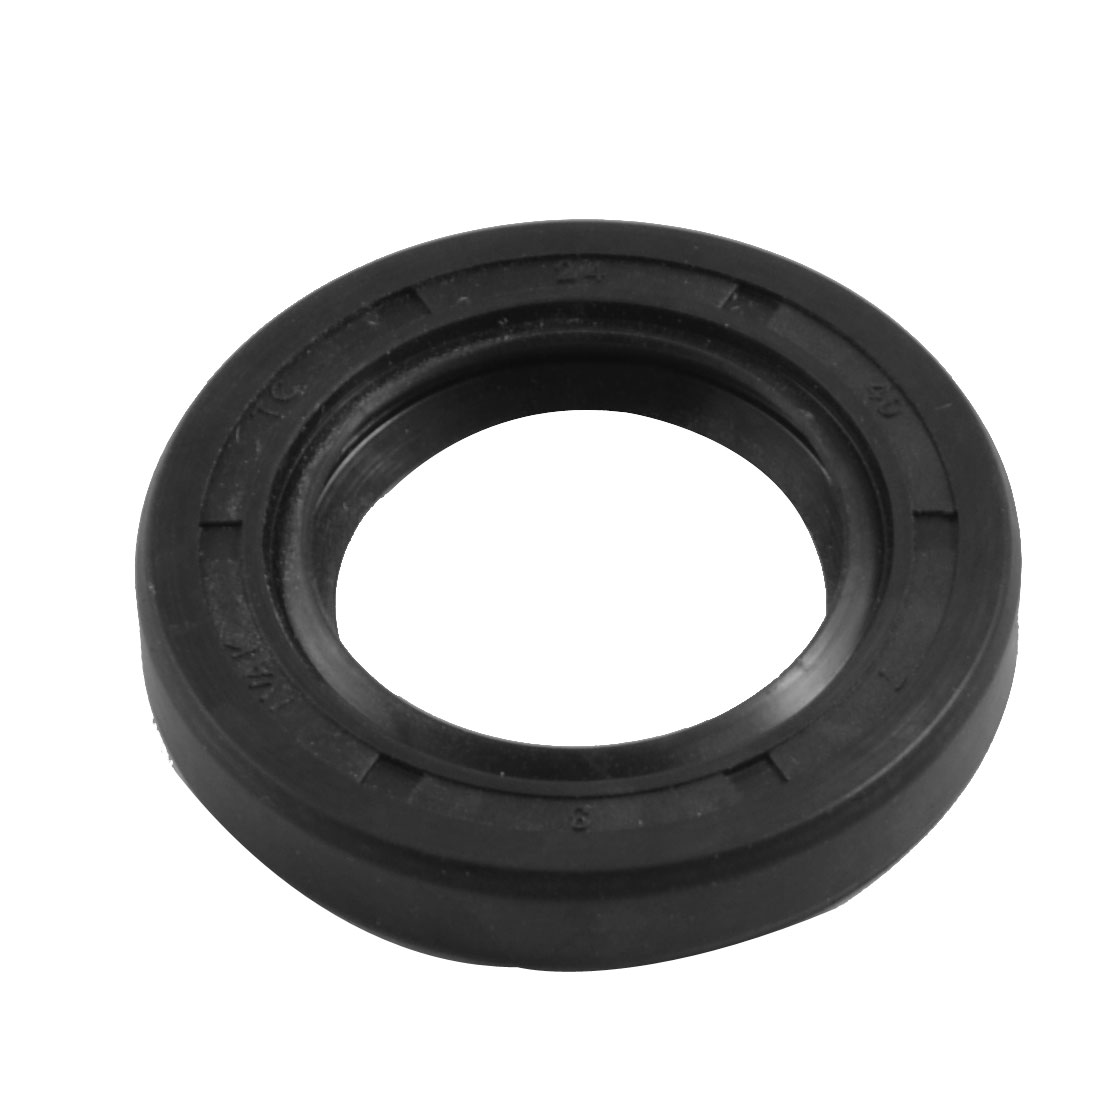 Nitrile Rubber Dual Lips Oil Shaft Seal TC 24mm x 40mm x 7mm